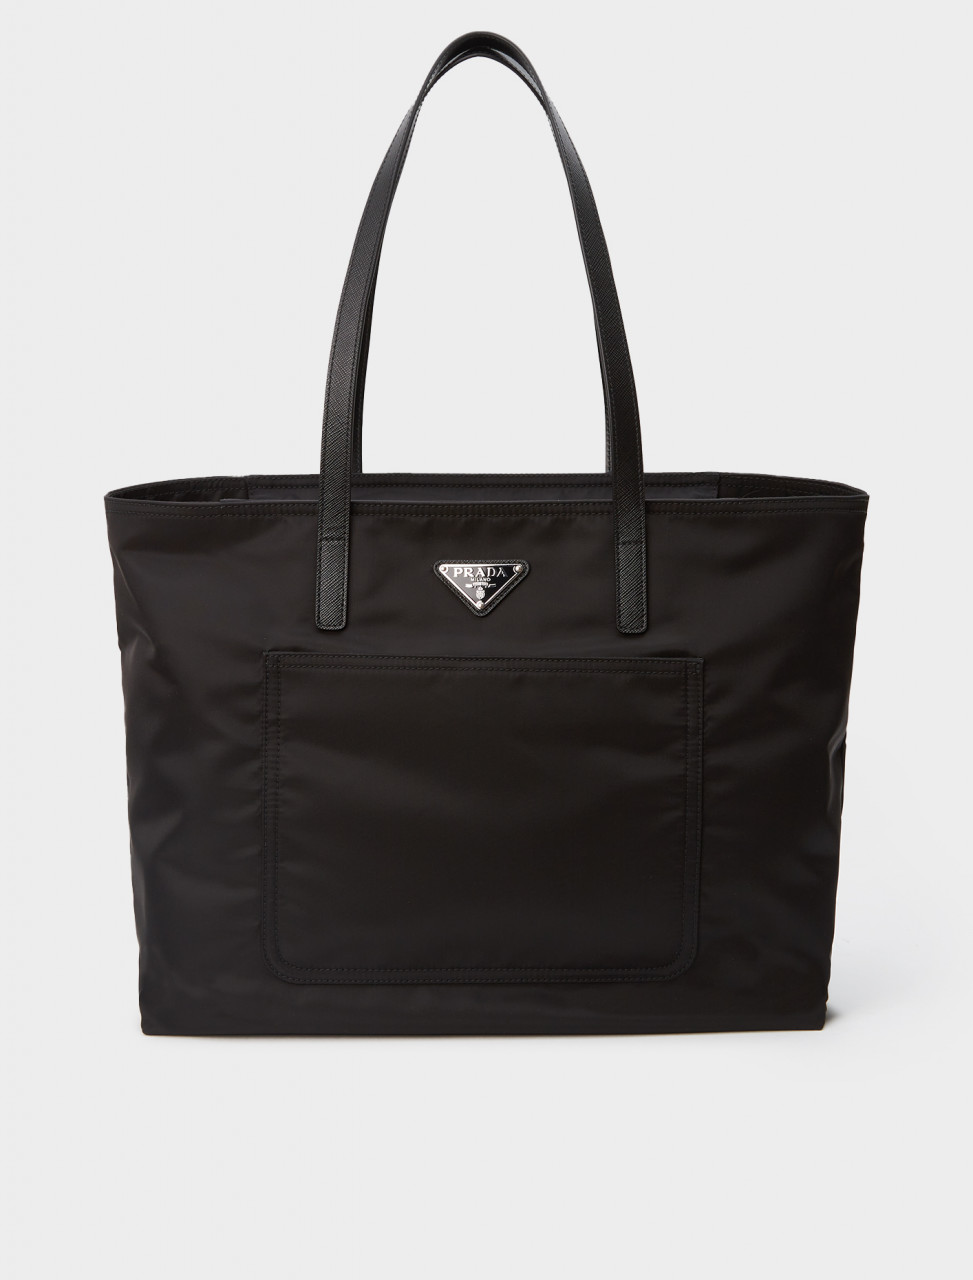 1BG052-F0002-OS PRADA NYLON SHOPPER BLACK